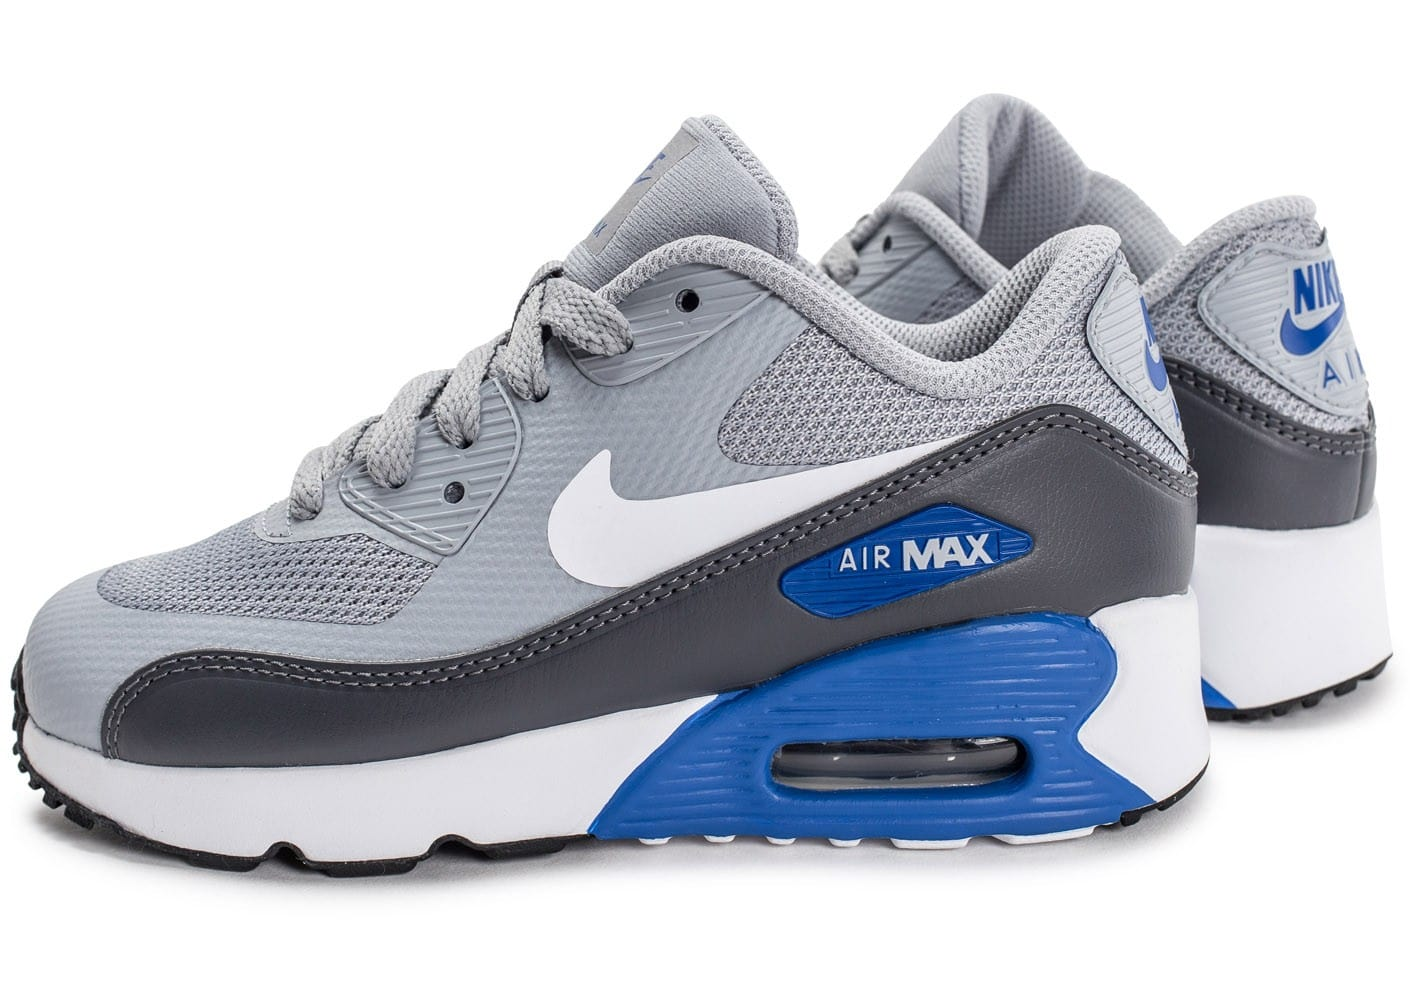 nike air max 90 ultra 2 0 ultra enfant grise chaussures black friday chausport. Black Bedroom Furniture Sets. Home Design Ideas